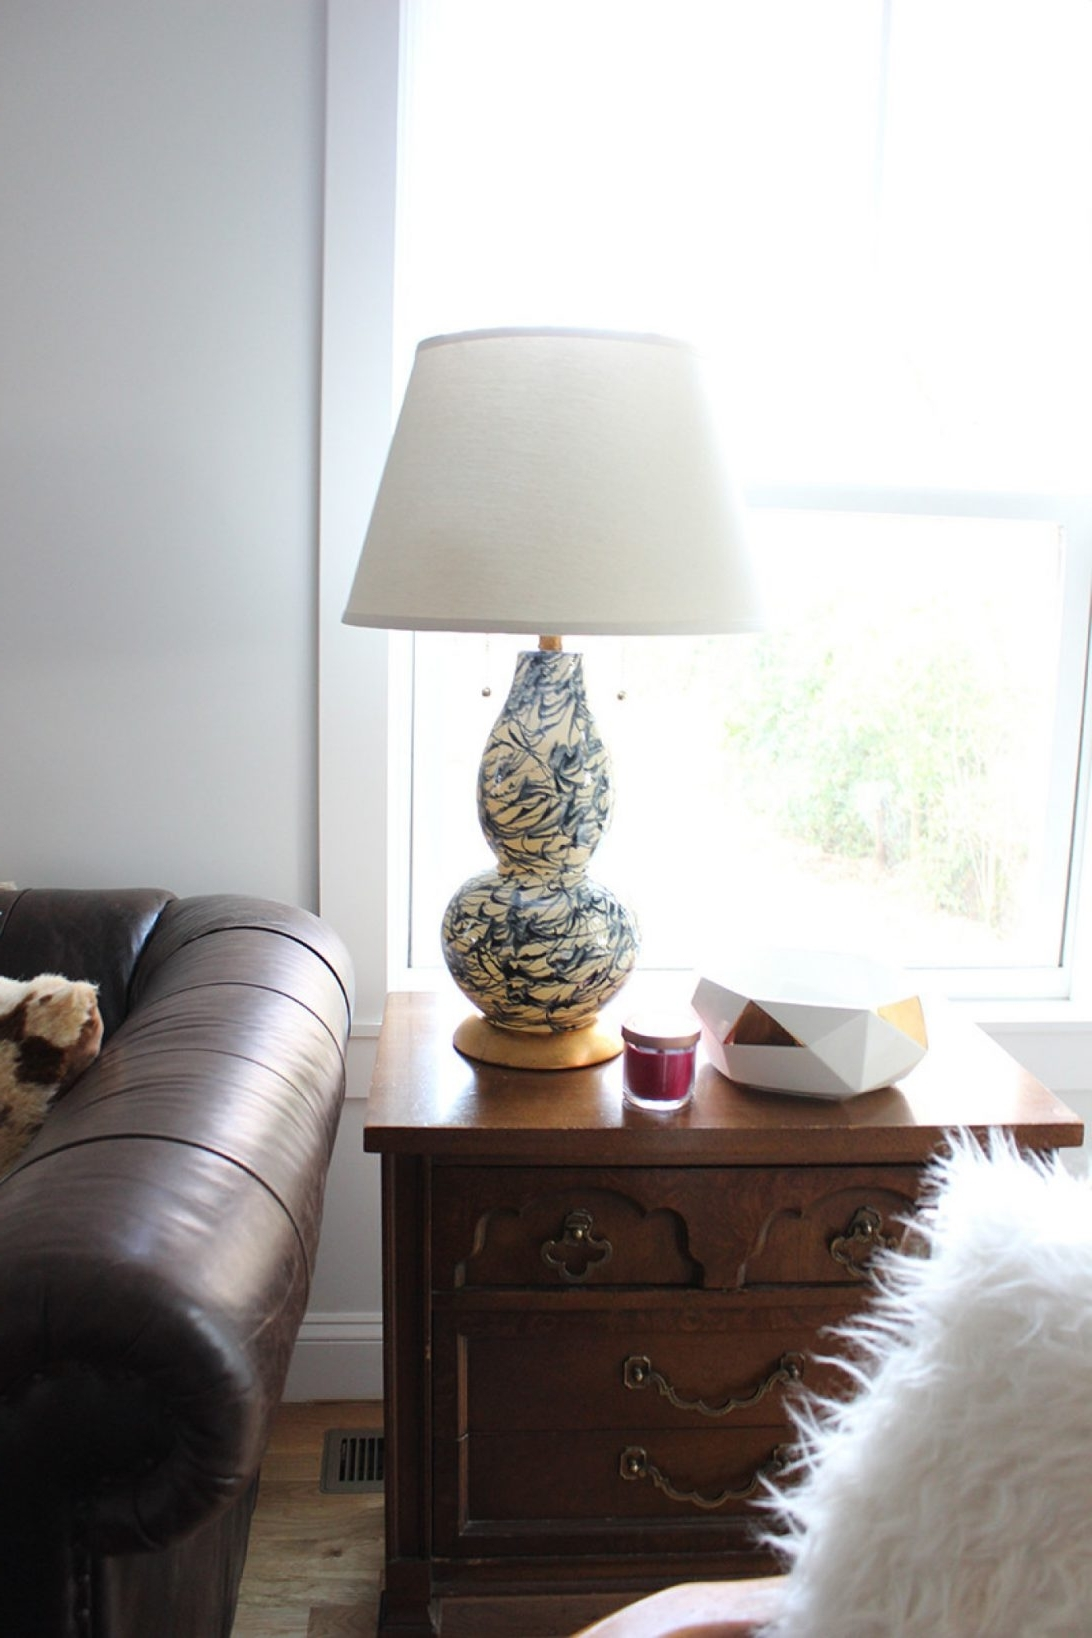 Fashionable 62 Most Skookum Bedside Lights Brass Table Lamp Big Lamps For Living Inside Table Lamps For Living Room (View 5 of 20)